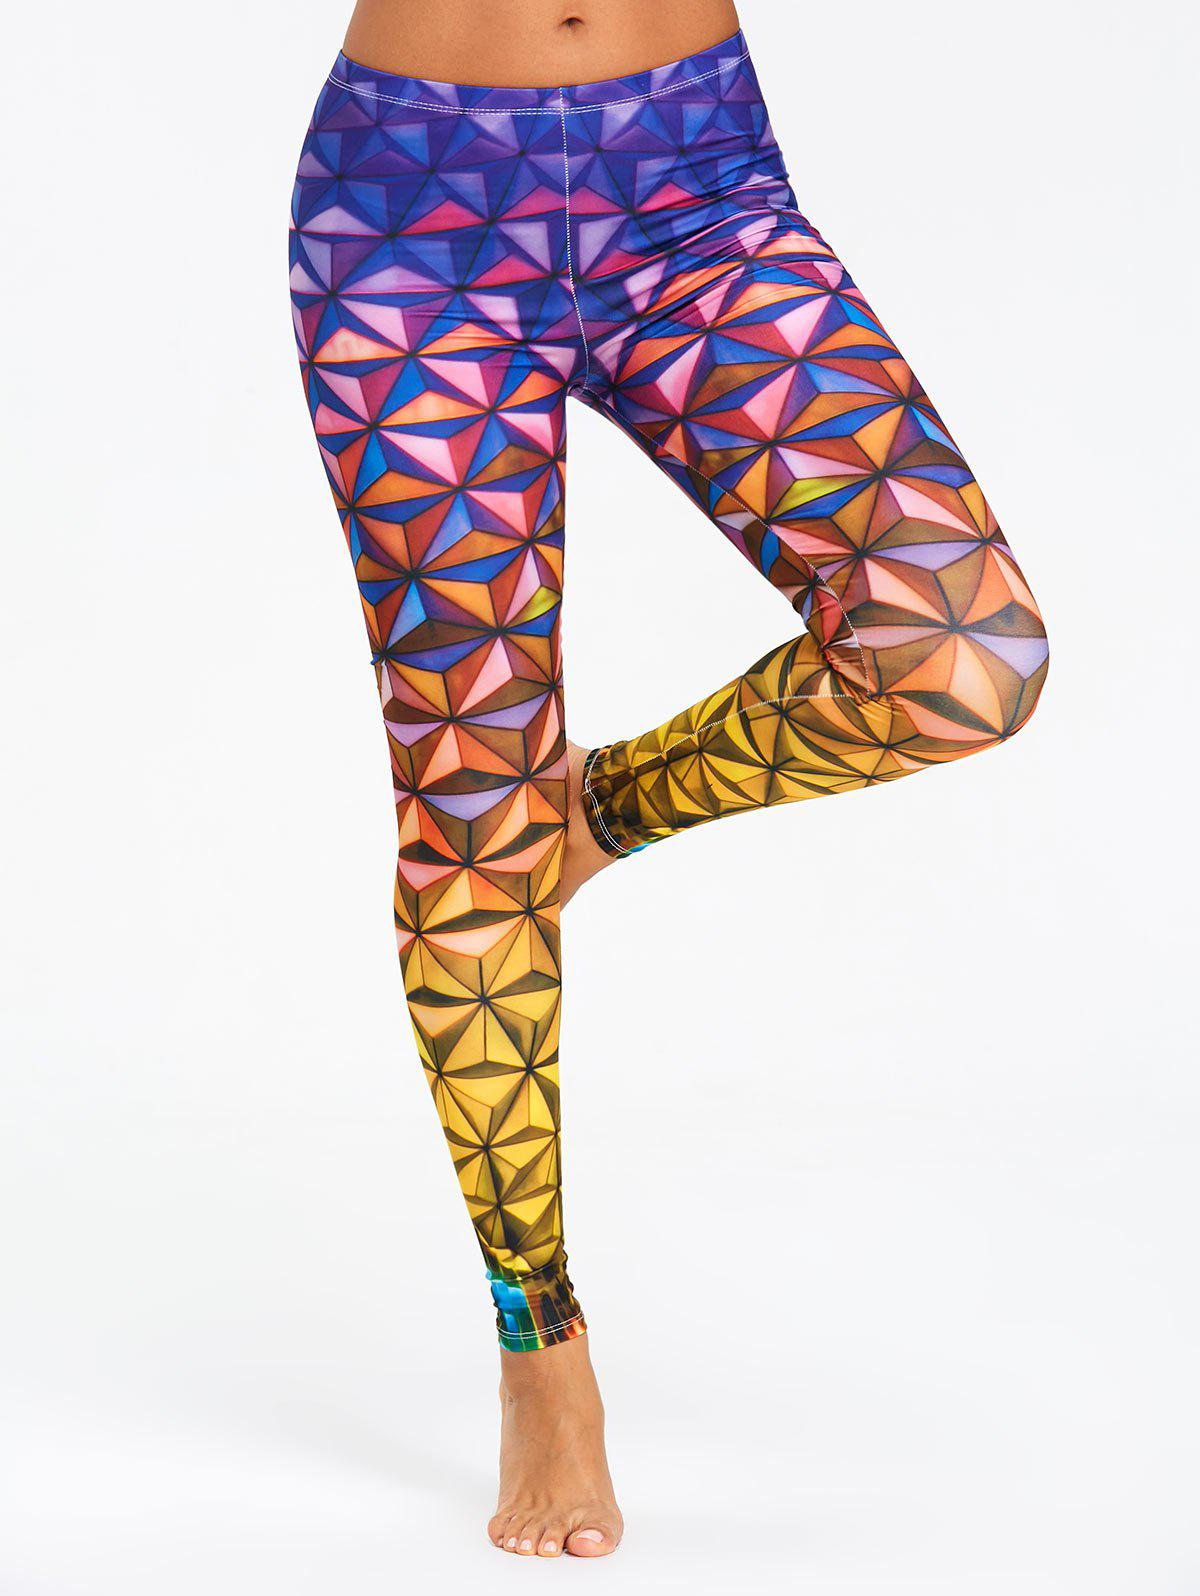 Geometric 3D Print Ombre Sports Leggings - COLORMIX M